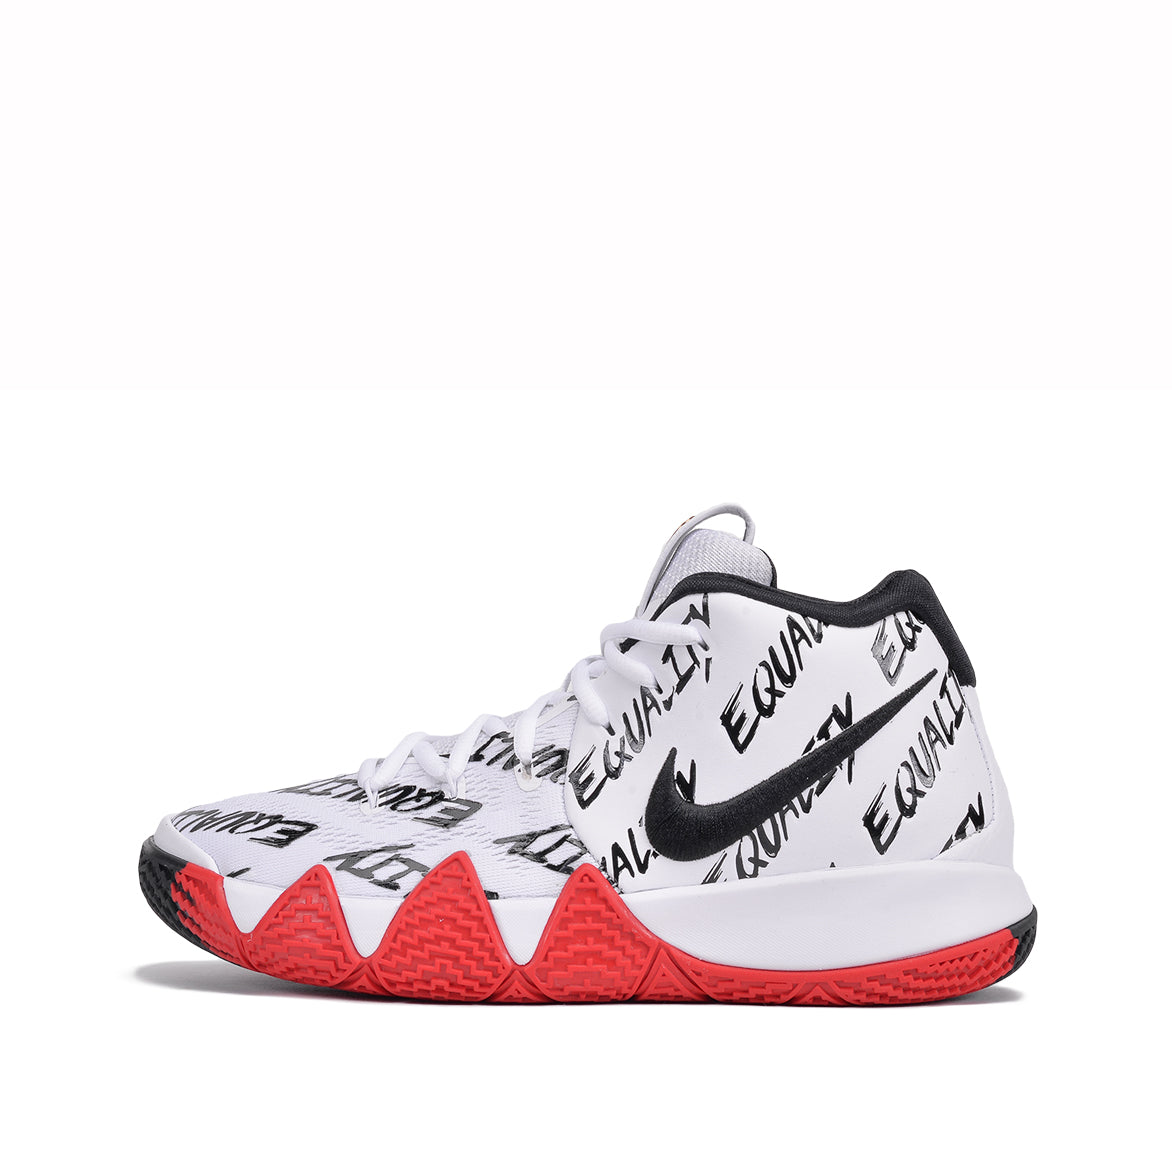 88731453875d Nike Kyrie 4 White Volt Top Deals. KYRIE 4 (GS) .